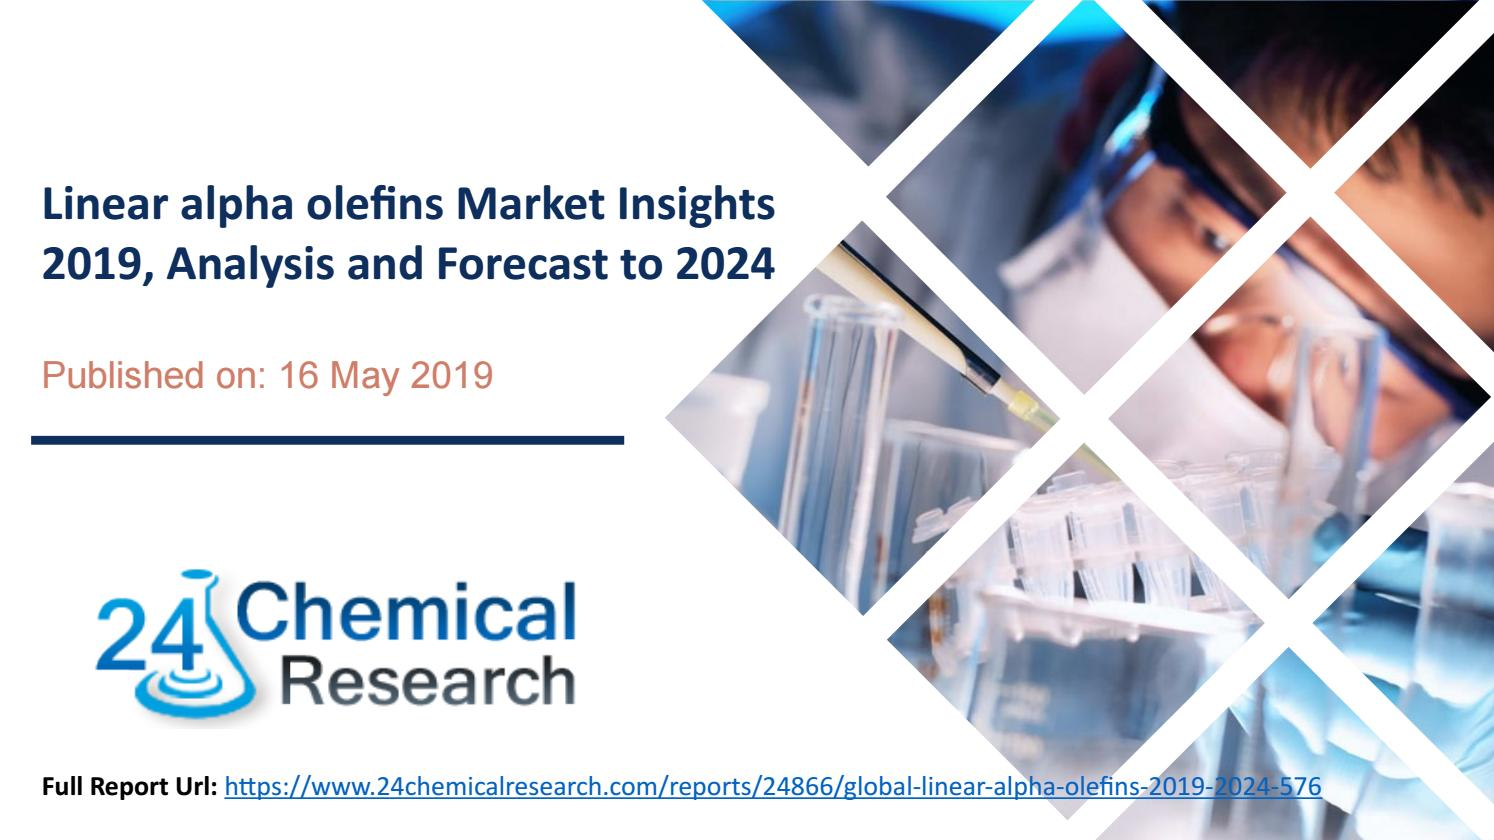 Linear alpha olefins Market Insights 2019, Analysis and Forecast to